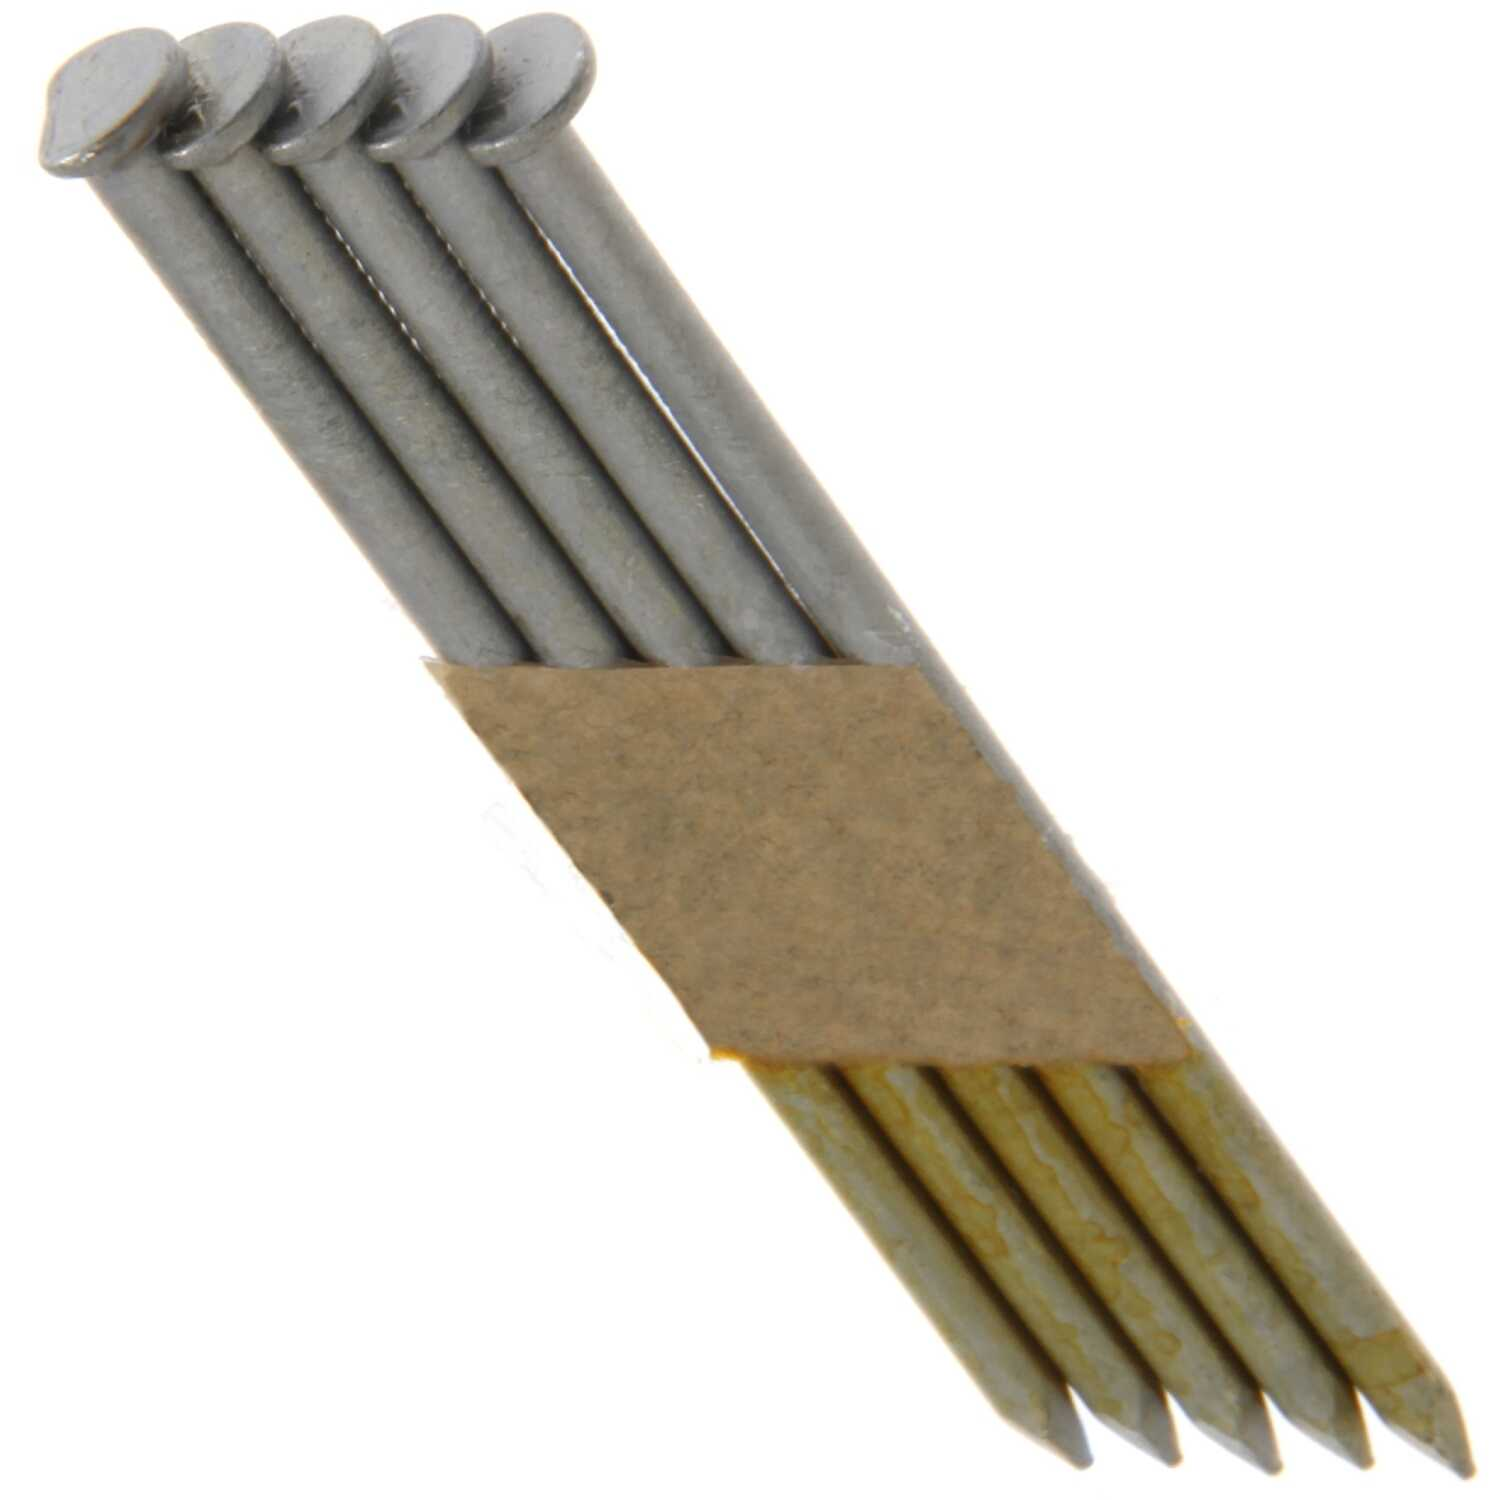 Grip-Rite  30 deg. 10-1/4 Ga. Smooth Shank  Angled Strip  Framing Nails  3-1/4 in. L x 0.13 in. Dia.